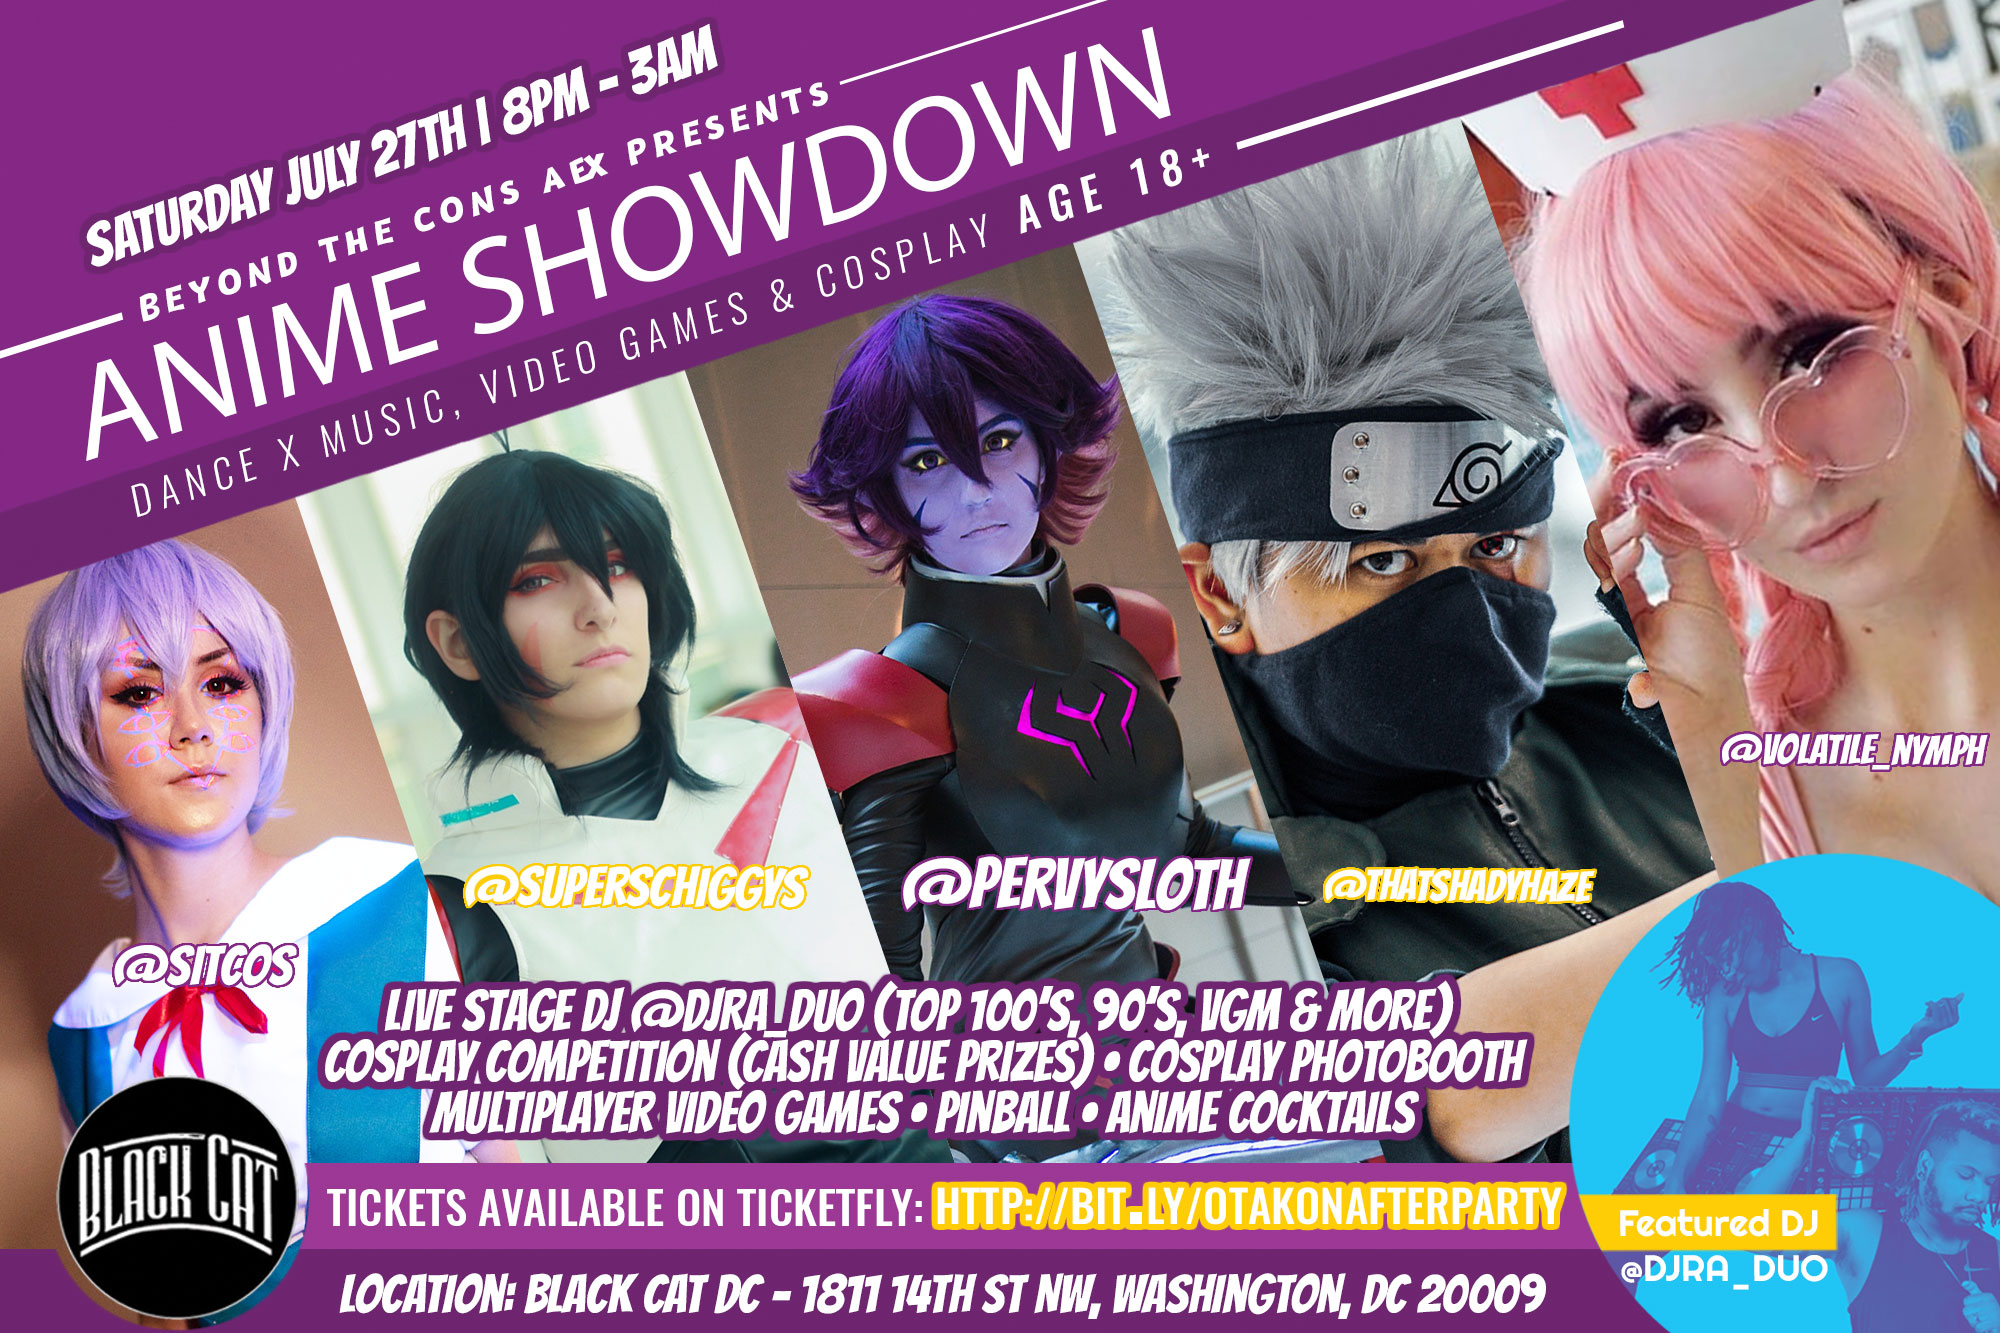 Aex Anime 27 jul 2019: beyond the cons aex presents: anime showdown